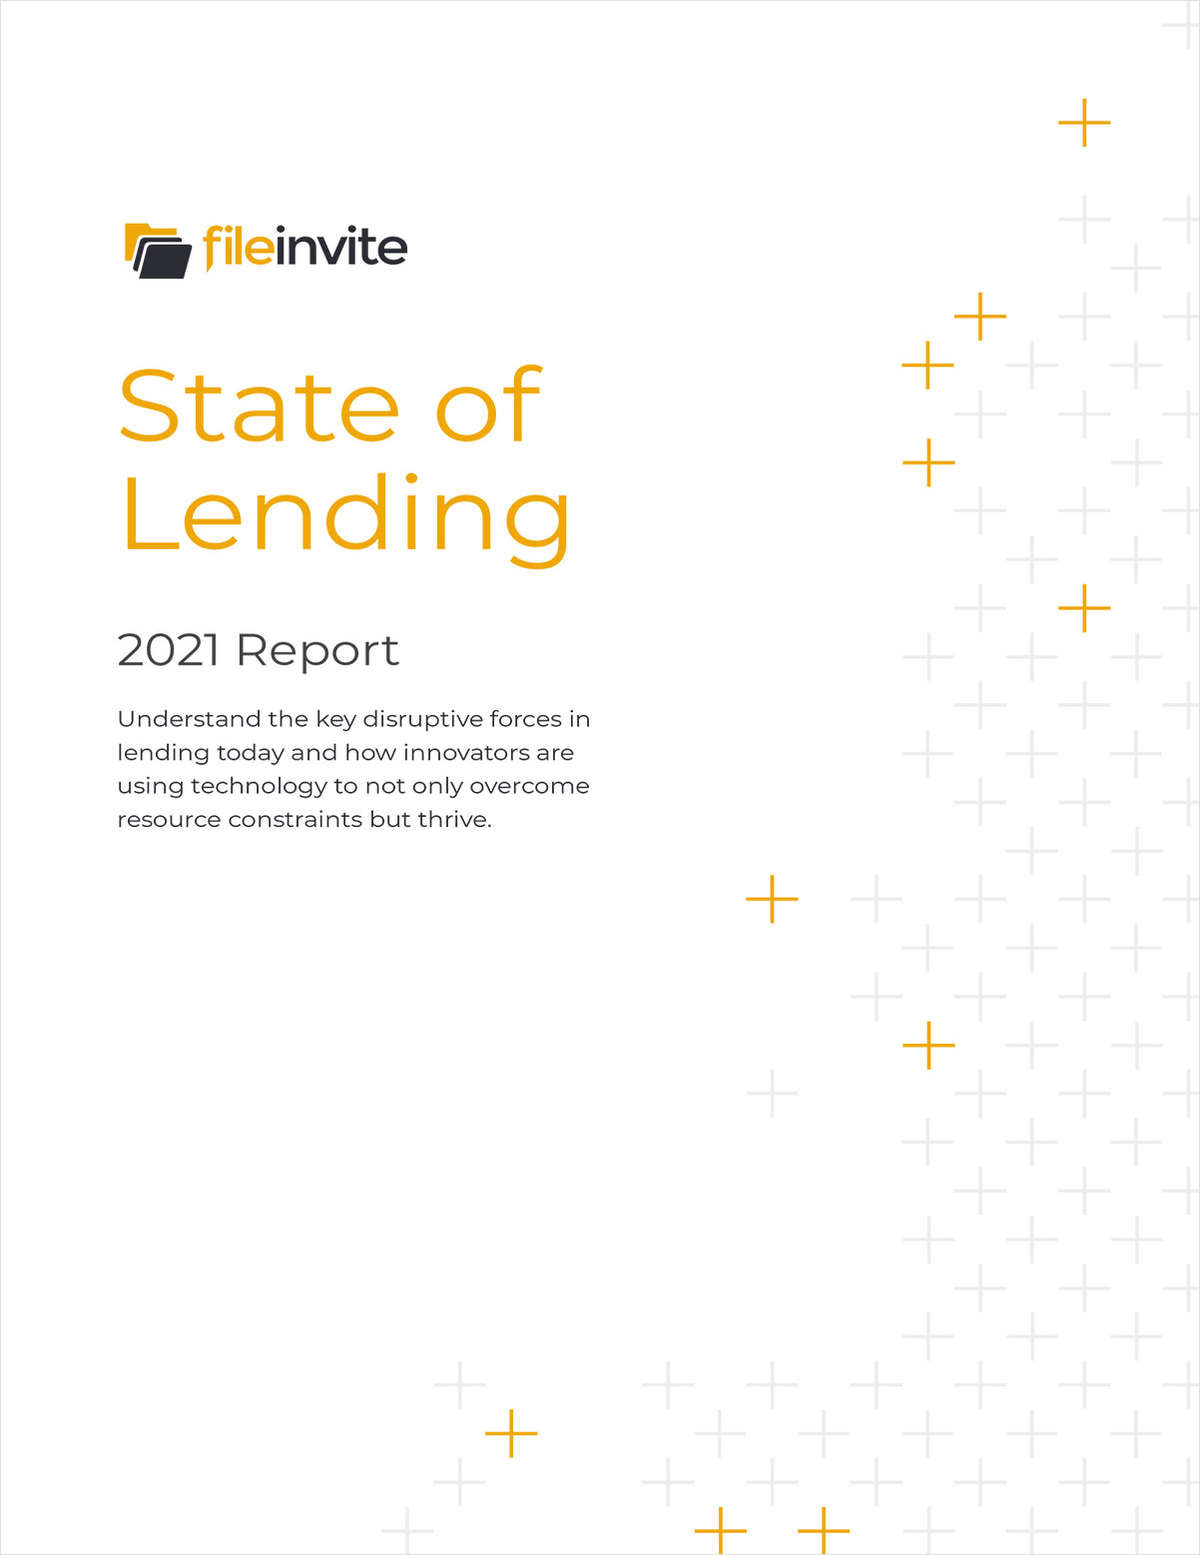 2021 Report: State of Lending